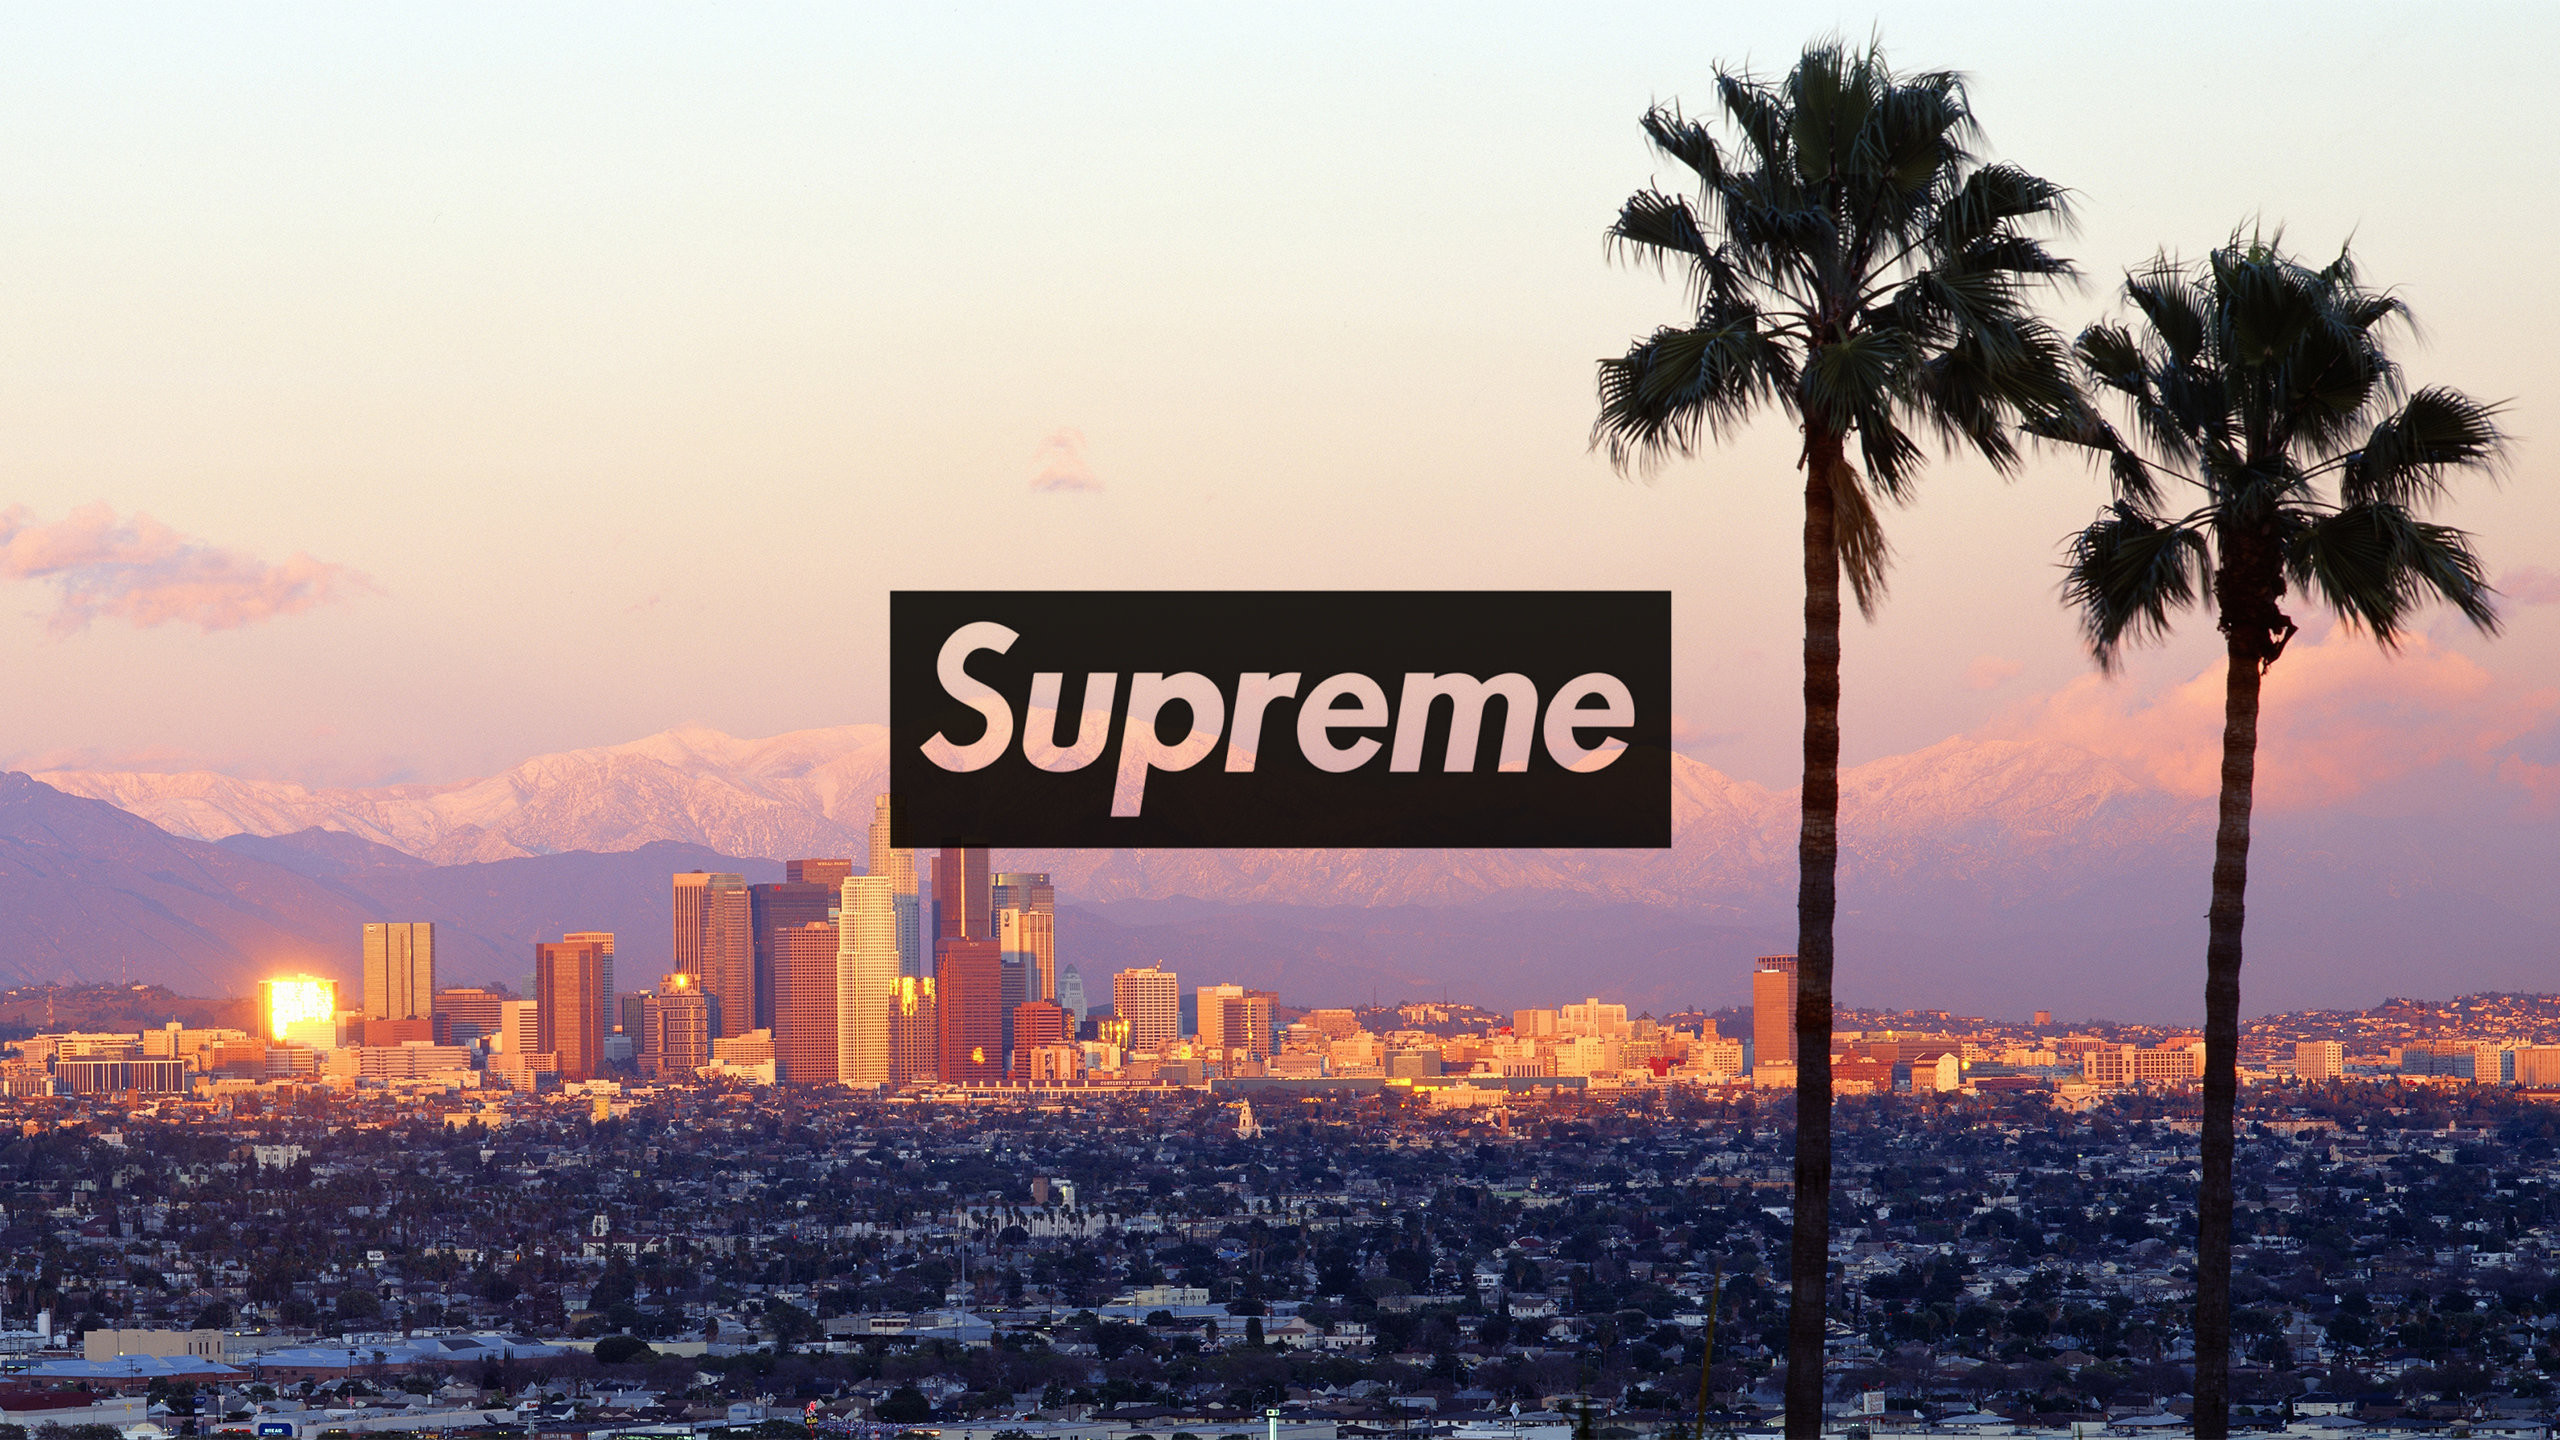 Supreme Wallpaper (73+ images)